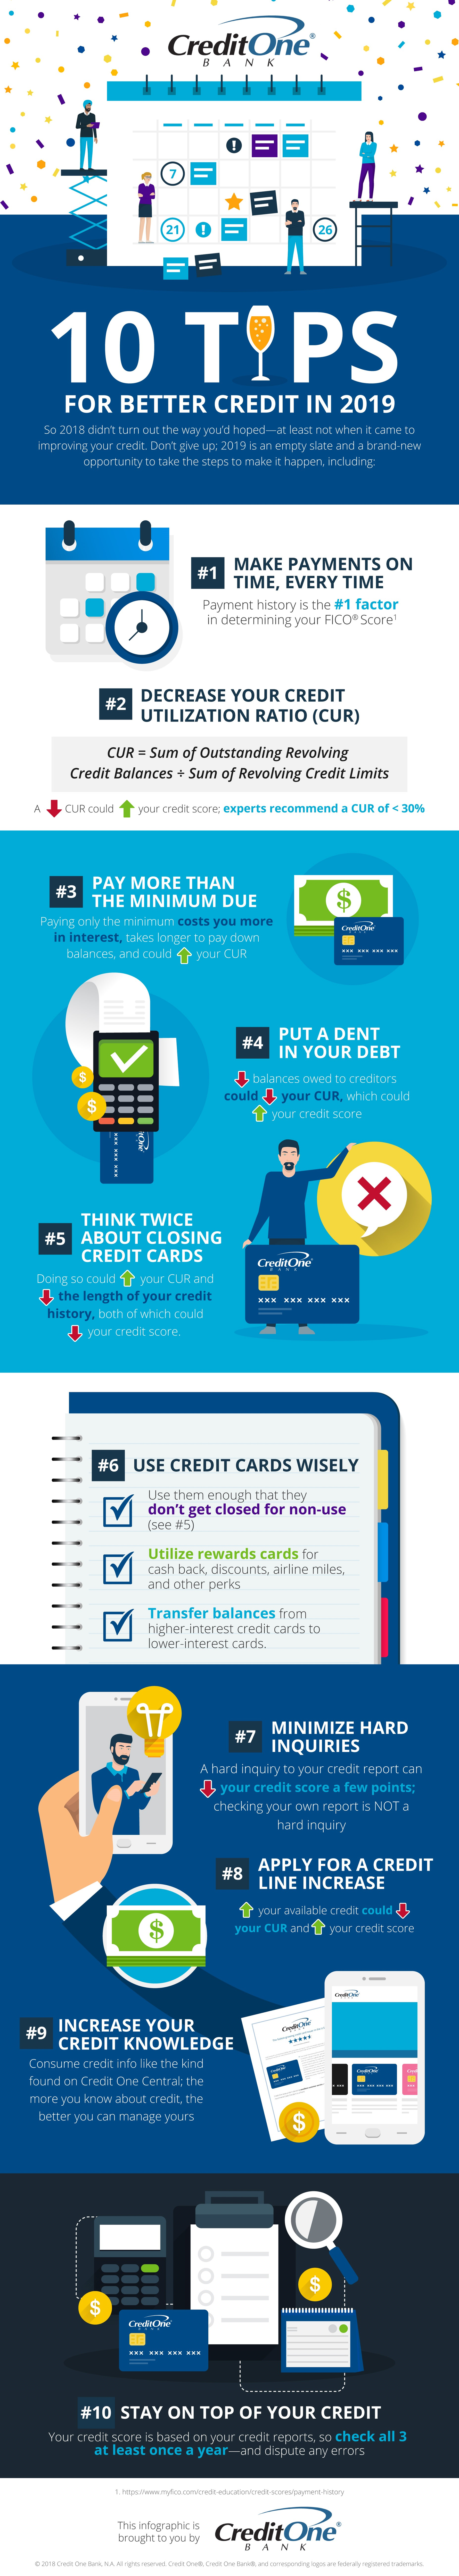 10 Tips for Better Credit in 2019 [Infographic]